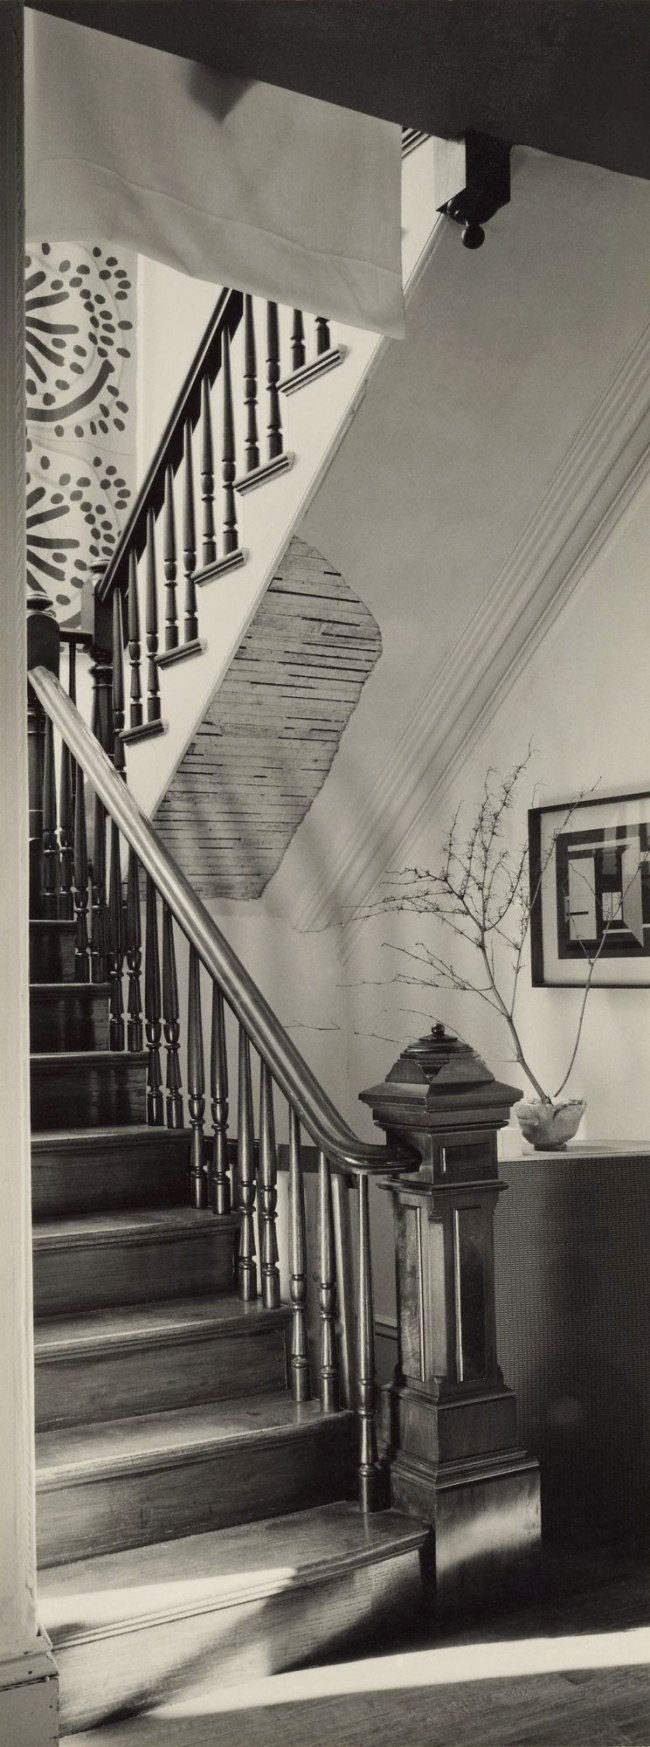 Minor White. '203 Park Ave., Arlington, Massachusetts' 1966